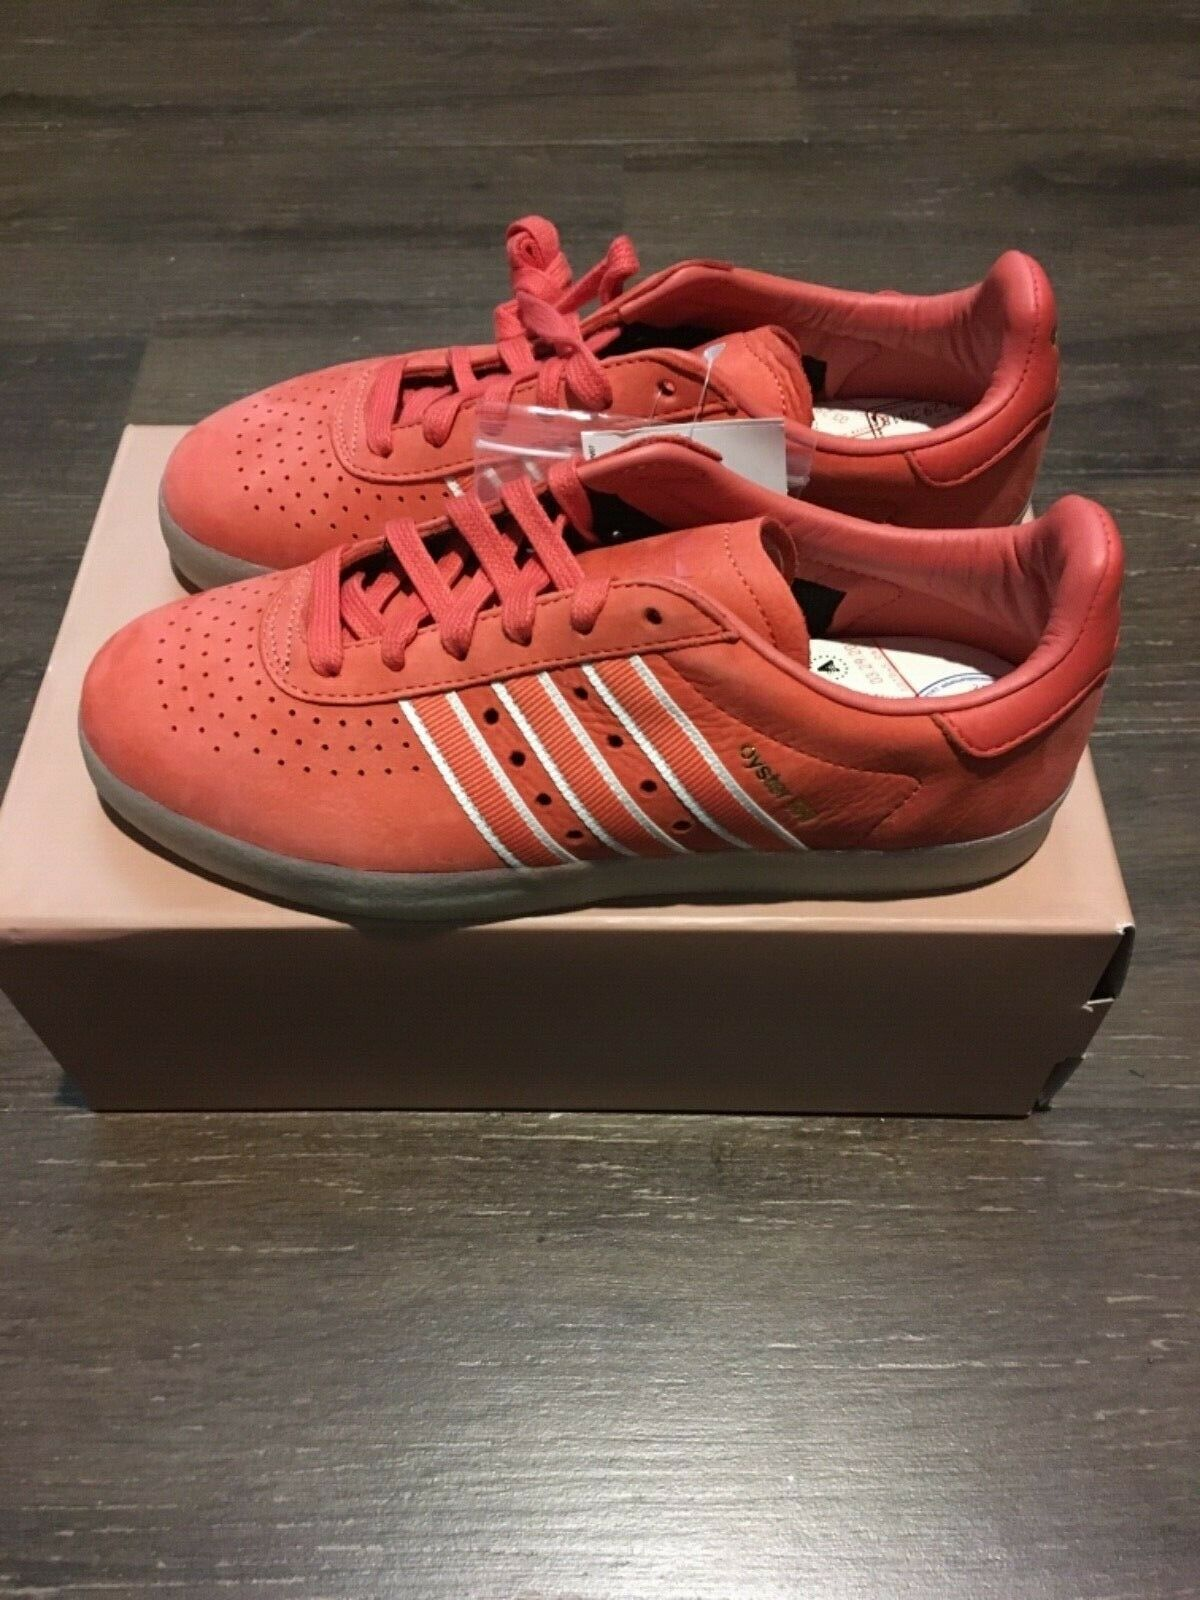 DB1975 Adidas Oyster Holdings 350 red scarlet Men's US Sz 6 Women's 7.5 boost 1